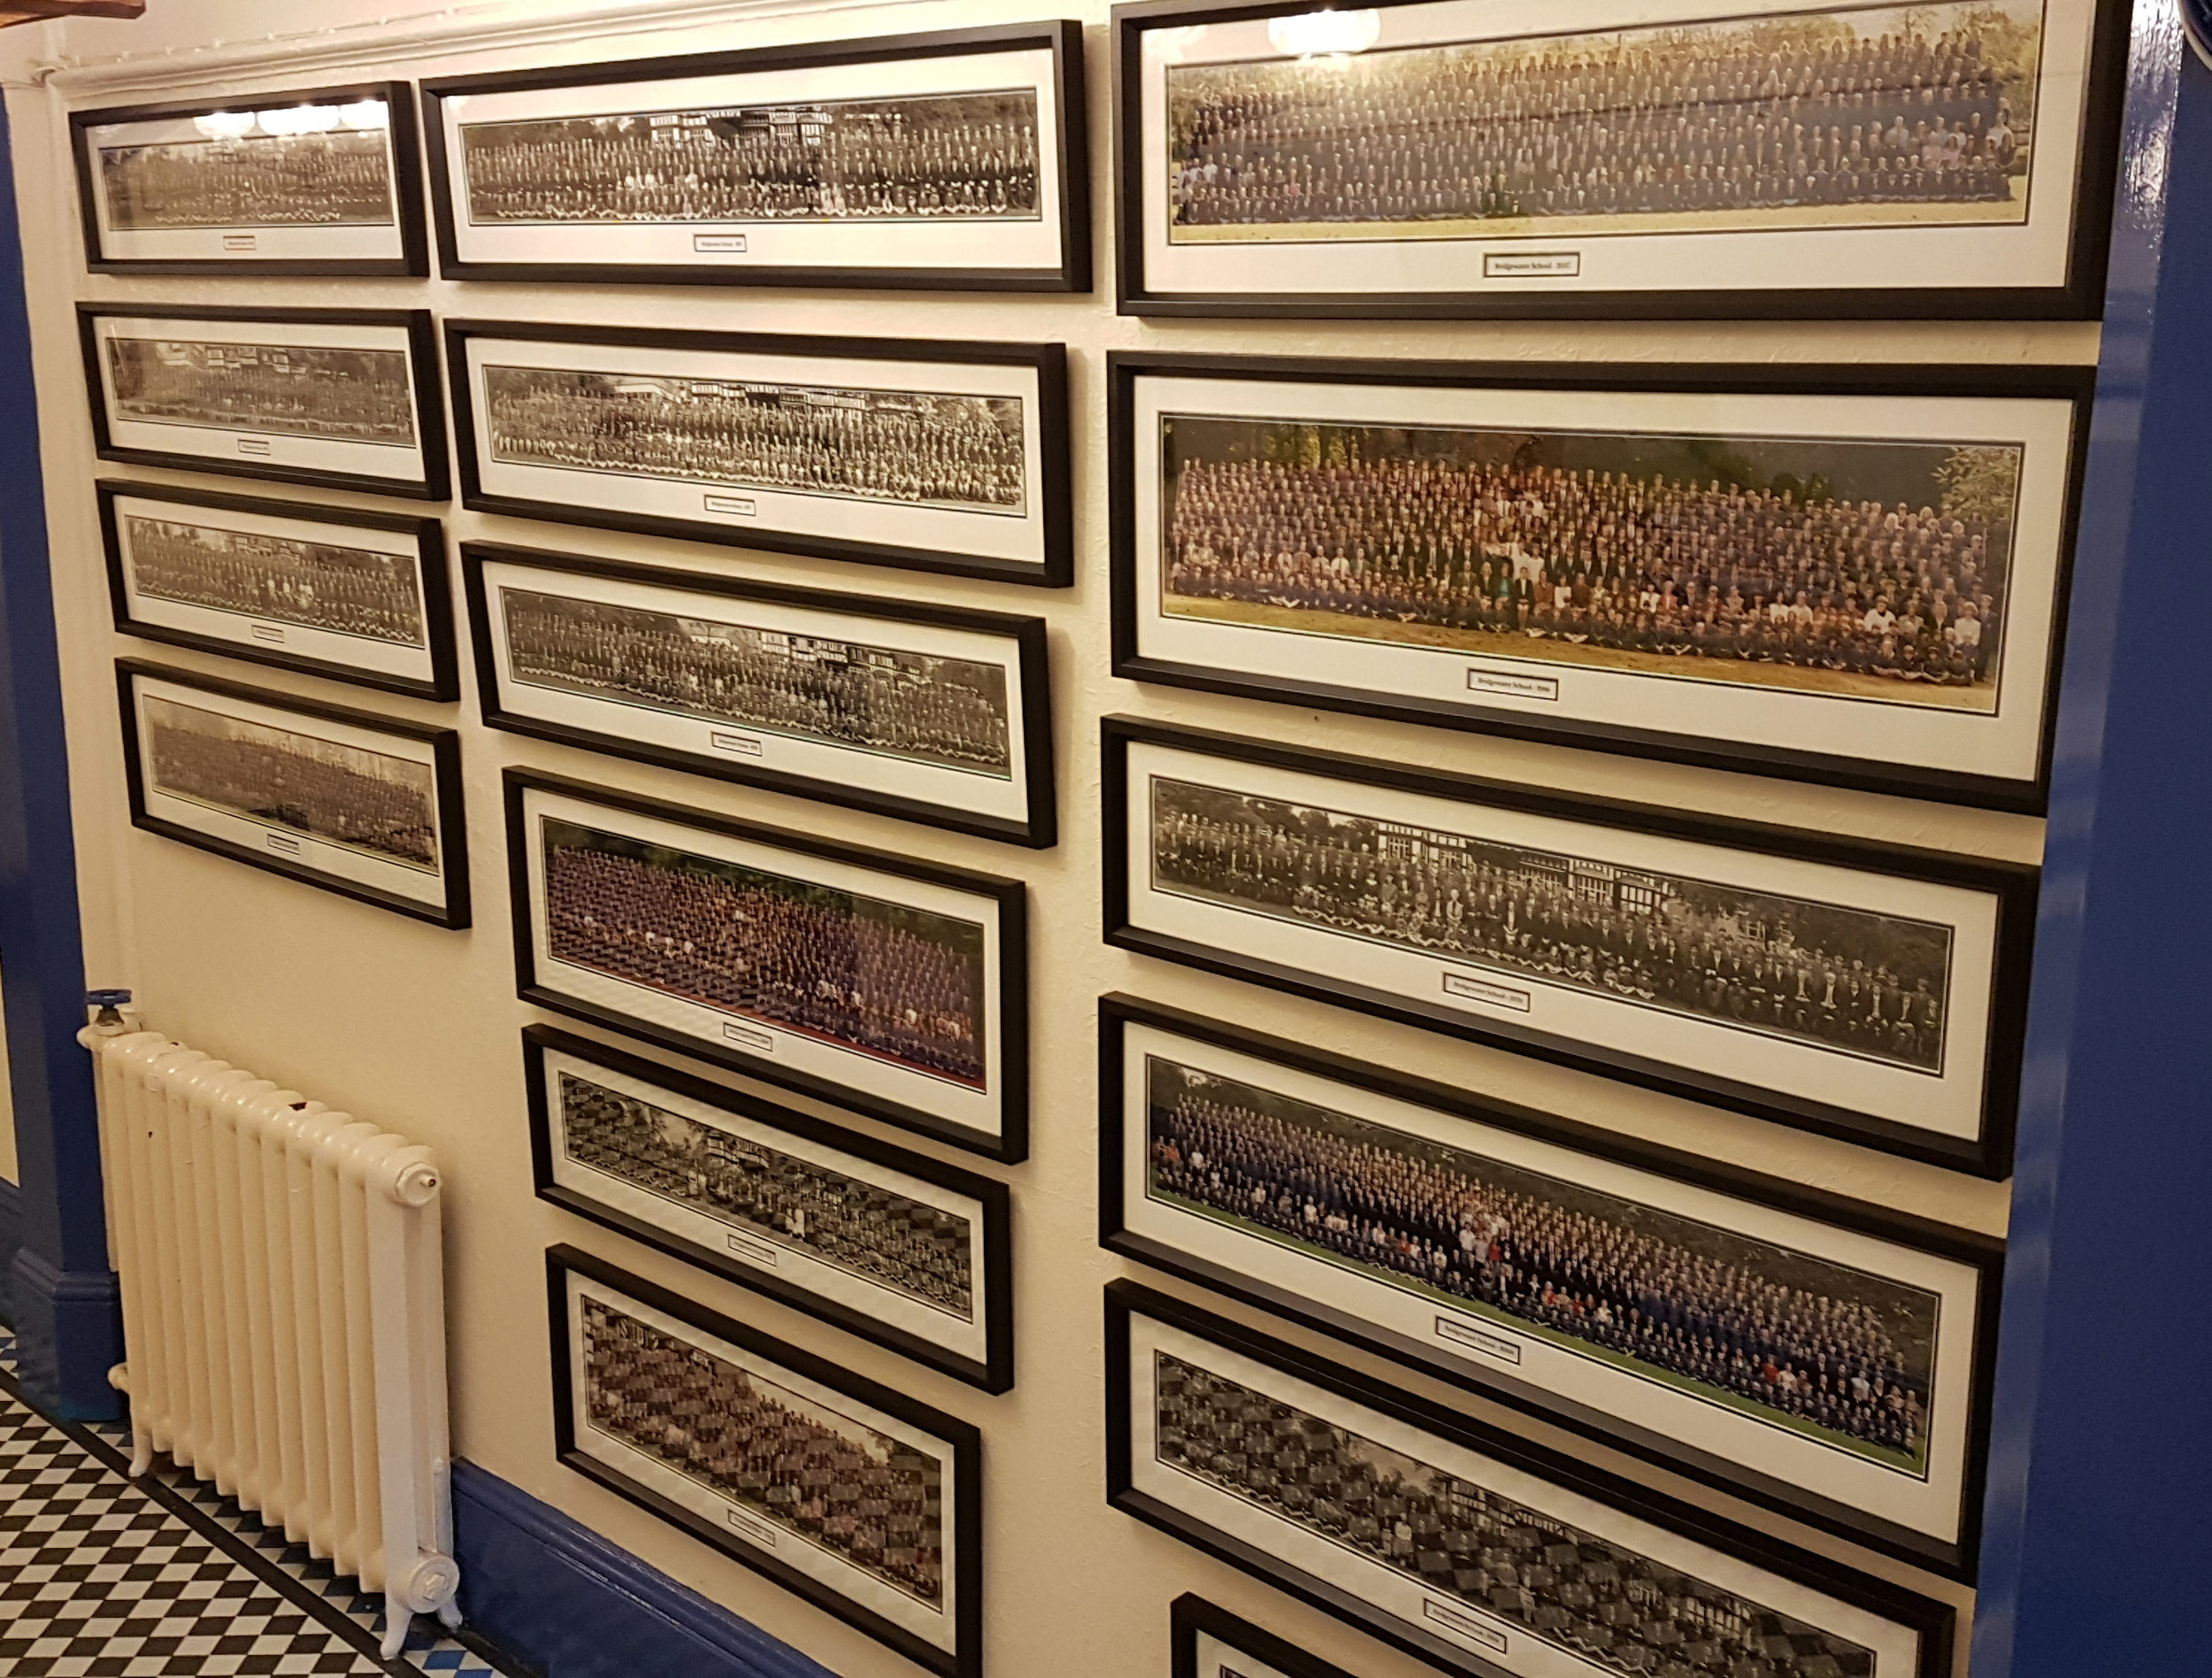 For a local school a complete historical record of all their panoramic format photos many of which were in bad condition and all poorly framed. Now restored, they are proudly displayed identically.